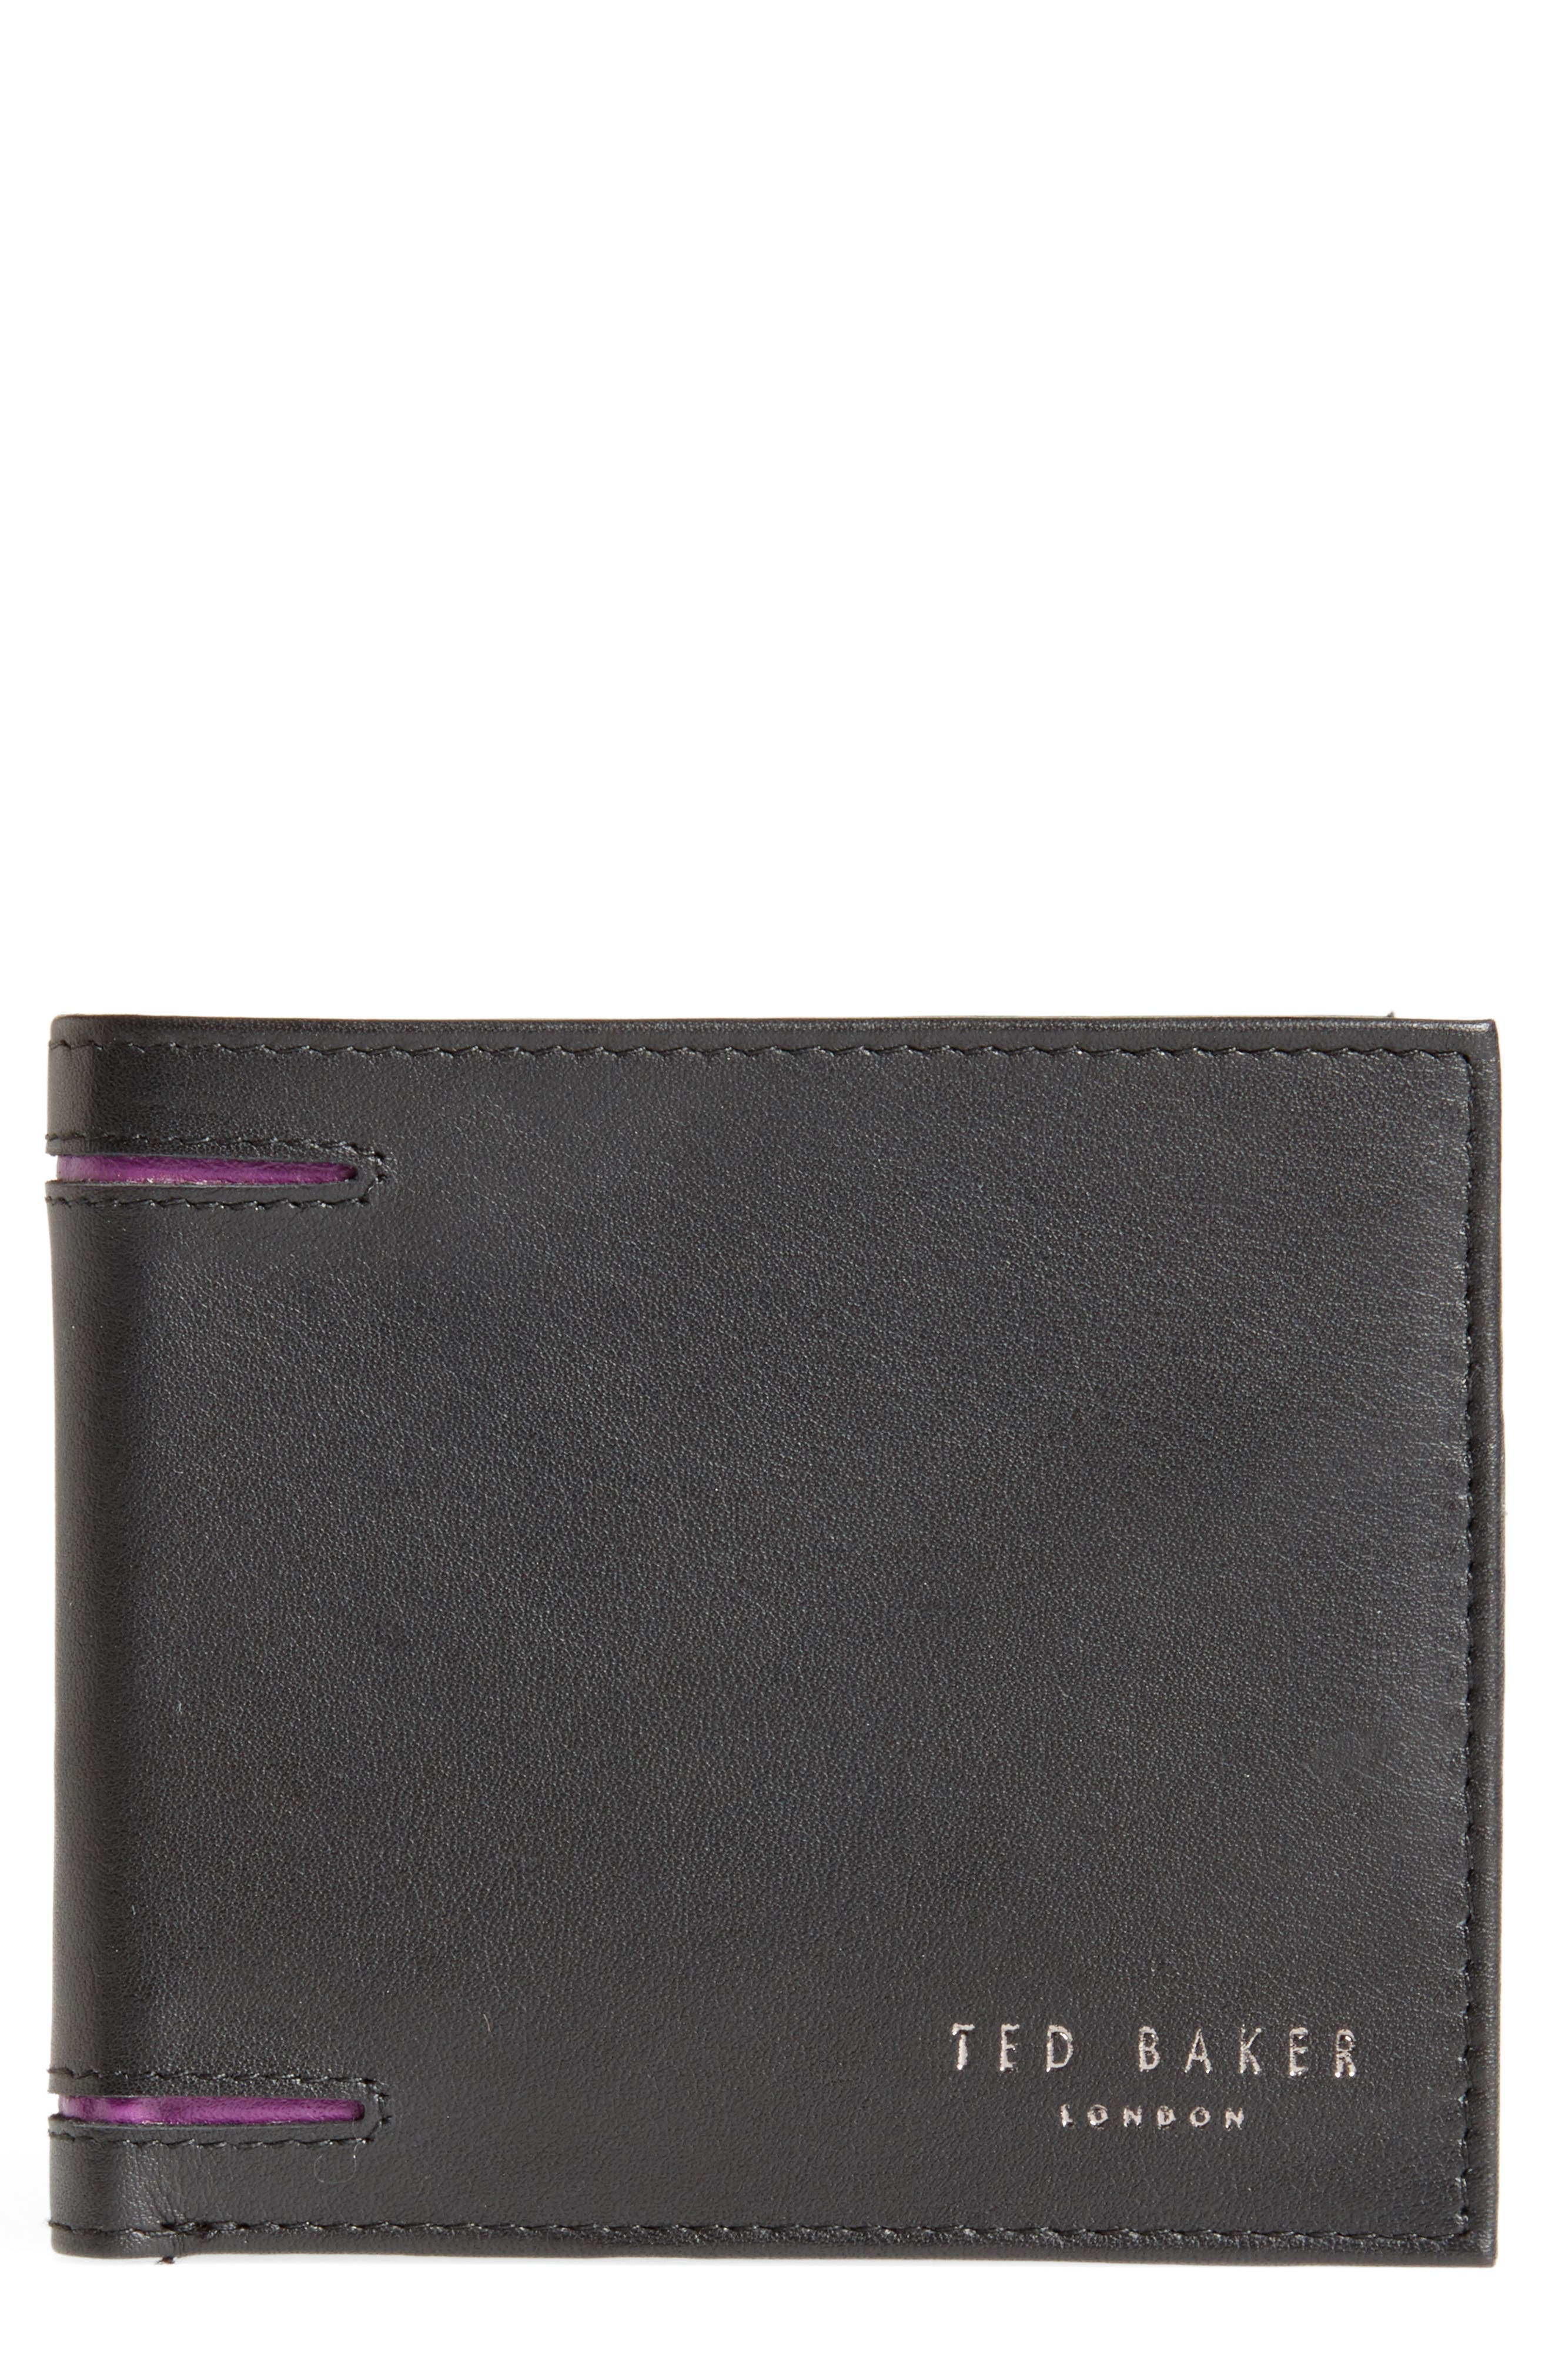 Figgy Inset Spine Leather Wallet,                         Main,                         color, Black